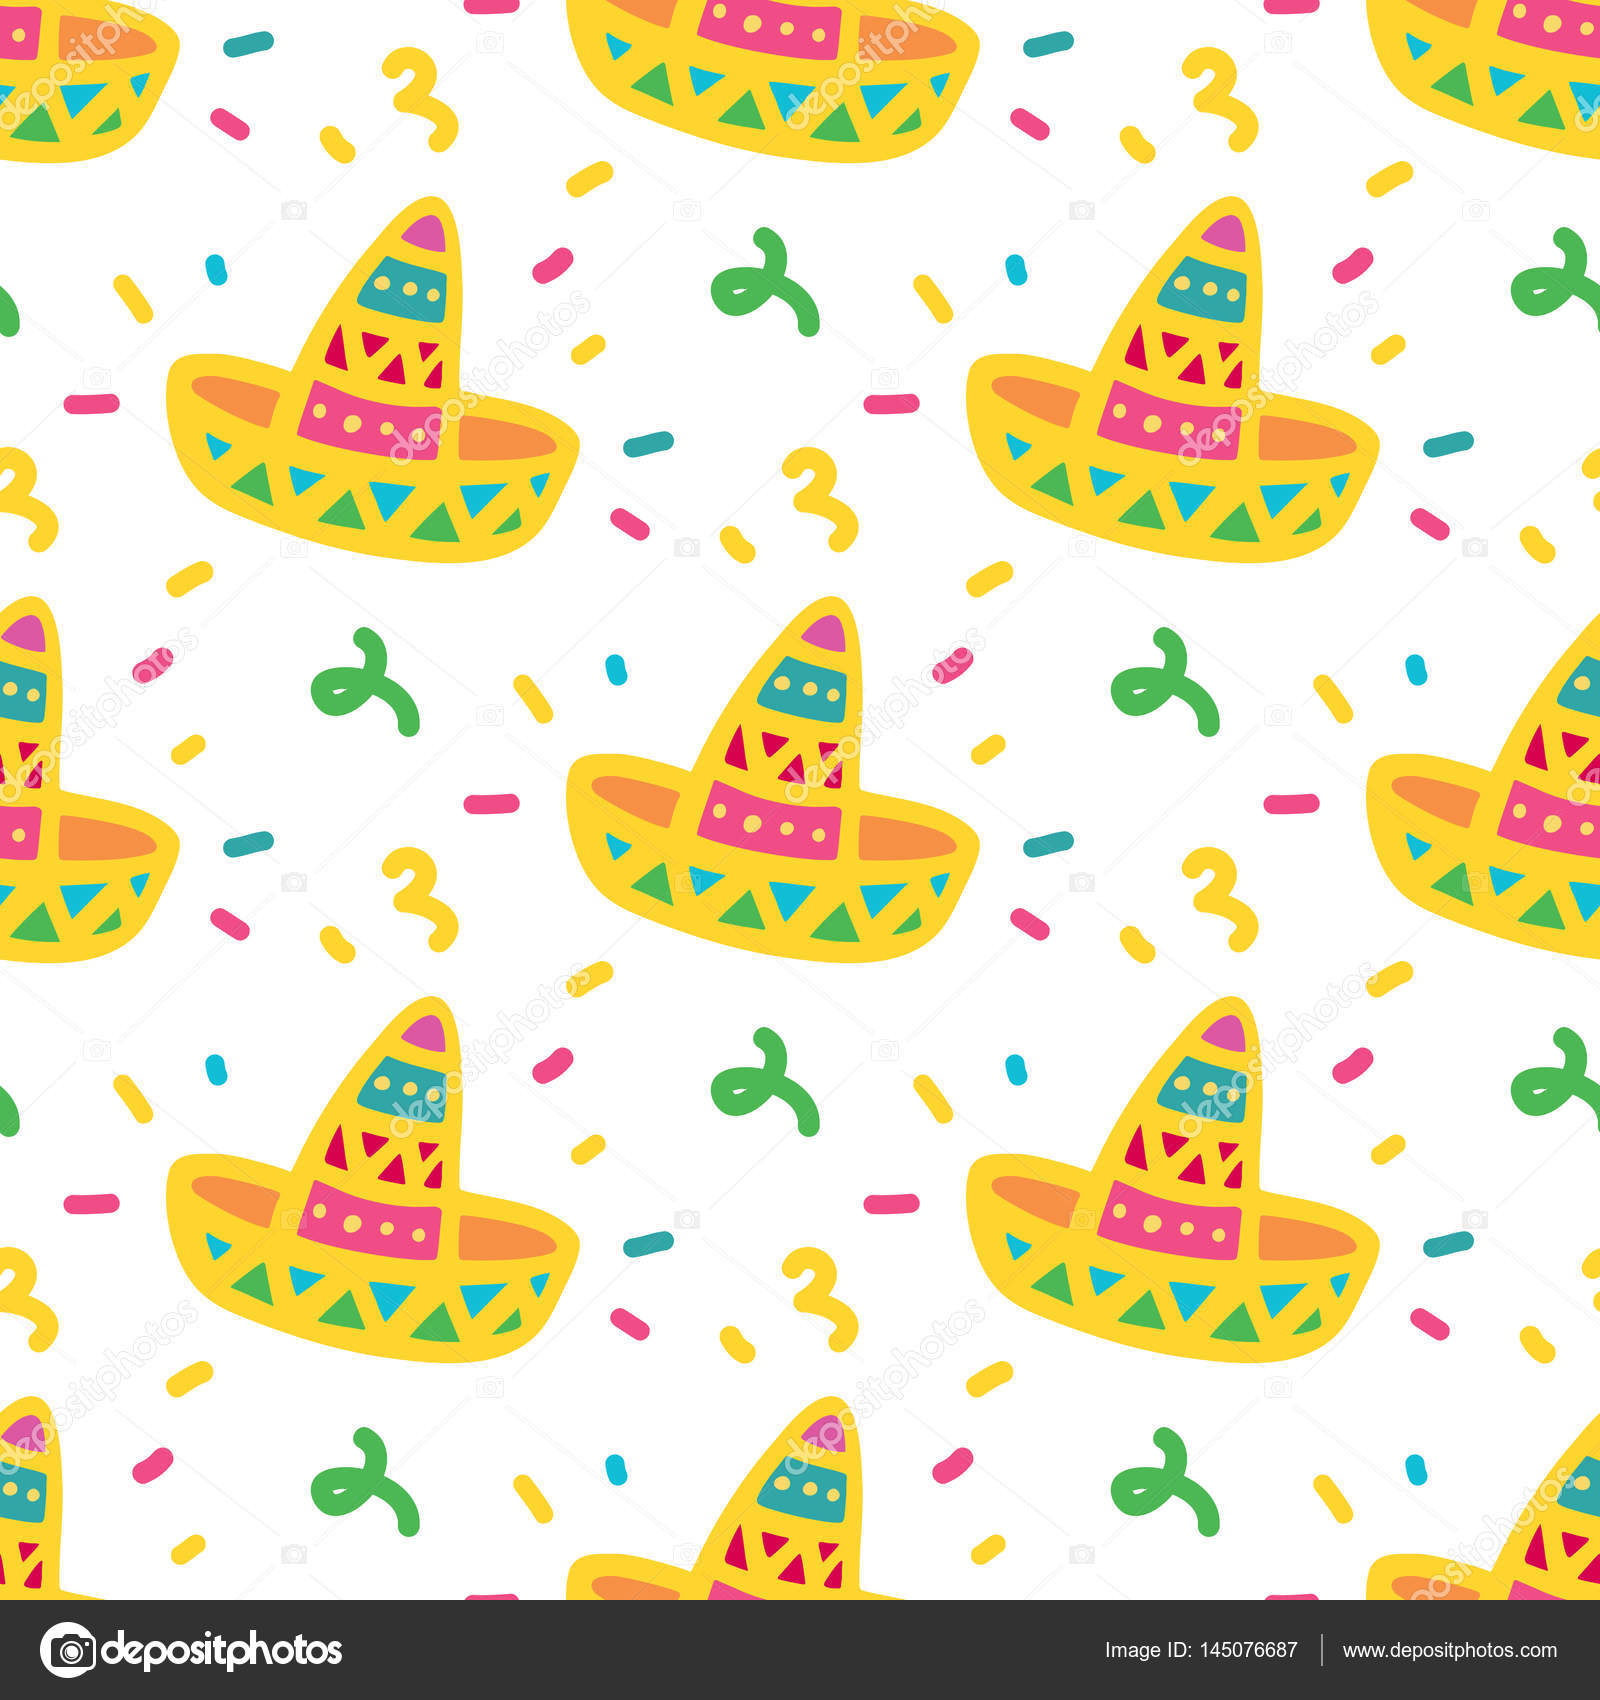 Bright colorful seamless pattern with a Mexican hat - sombrero.– stock  illustration 31c054118e4